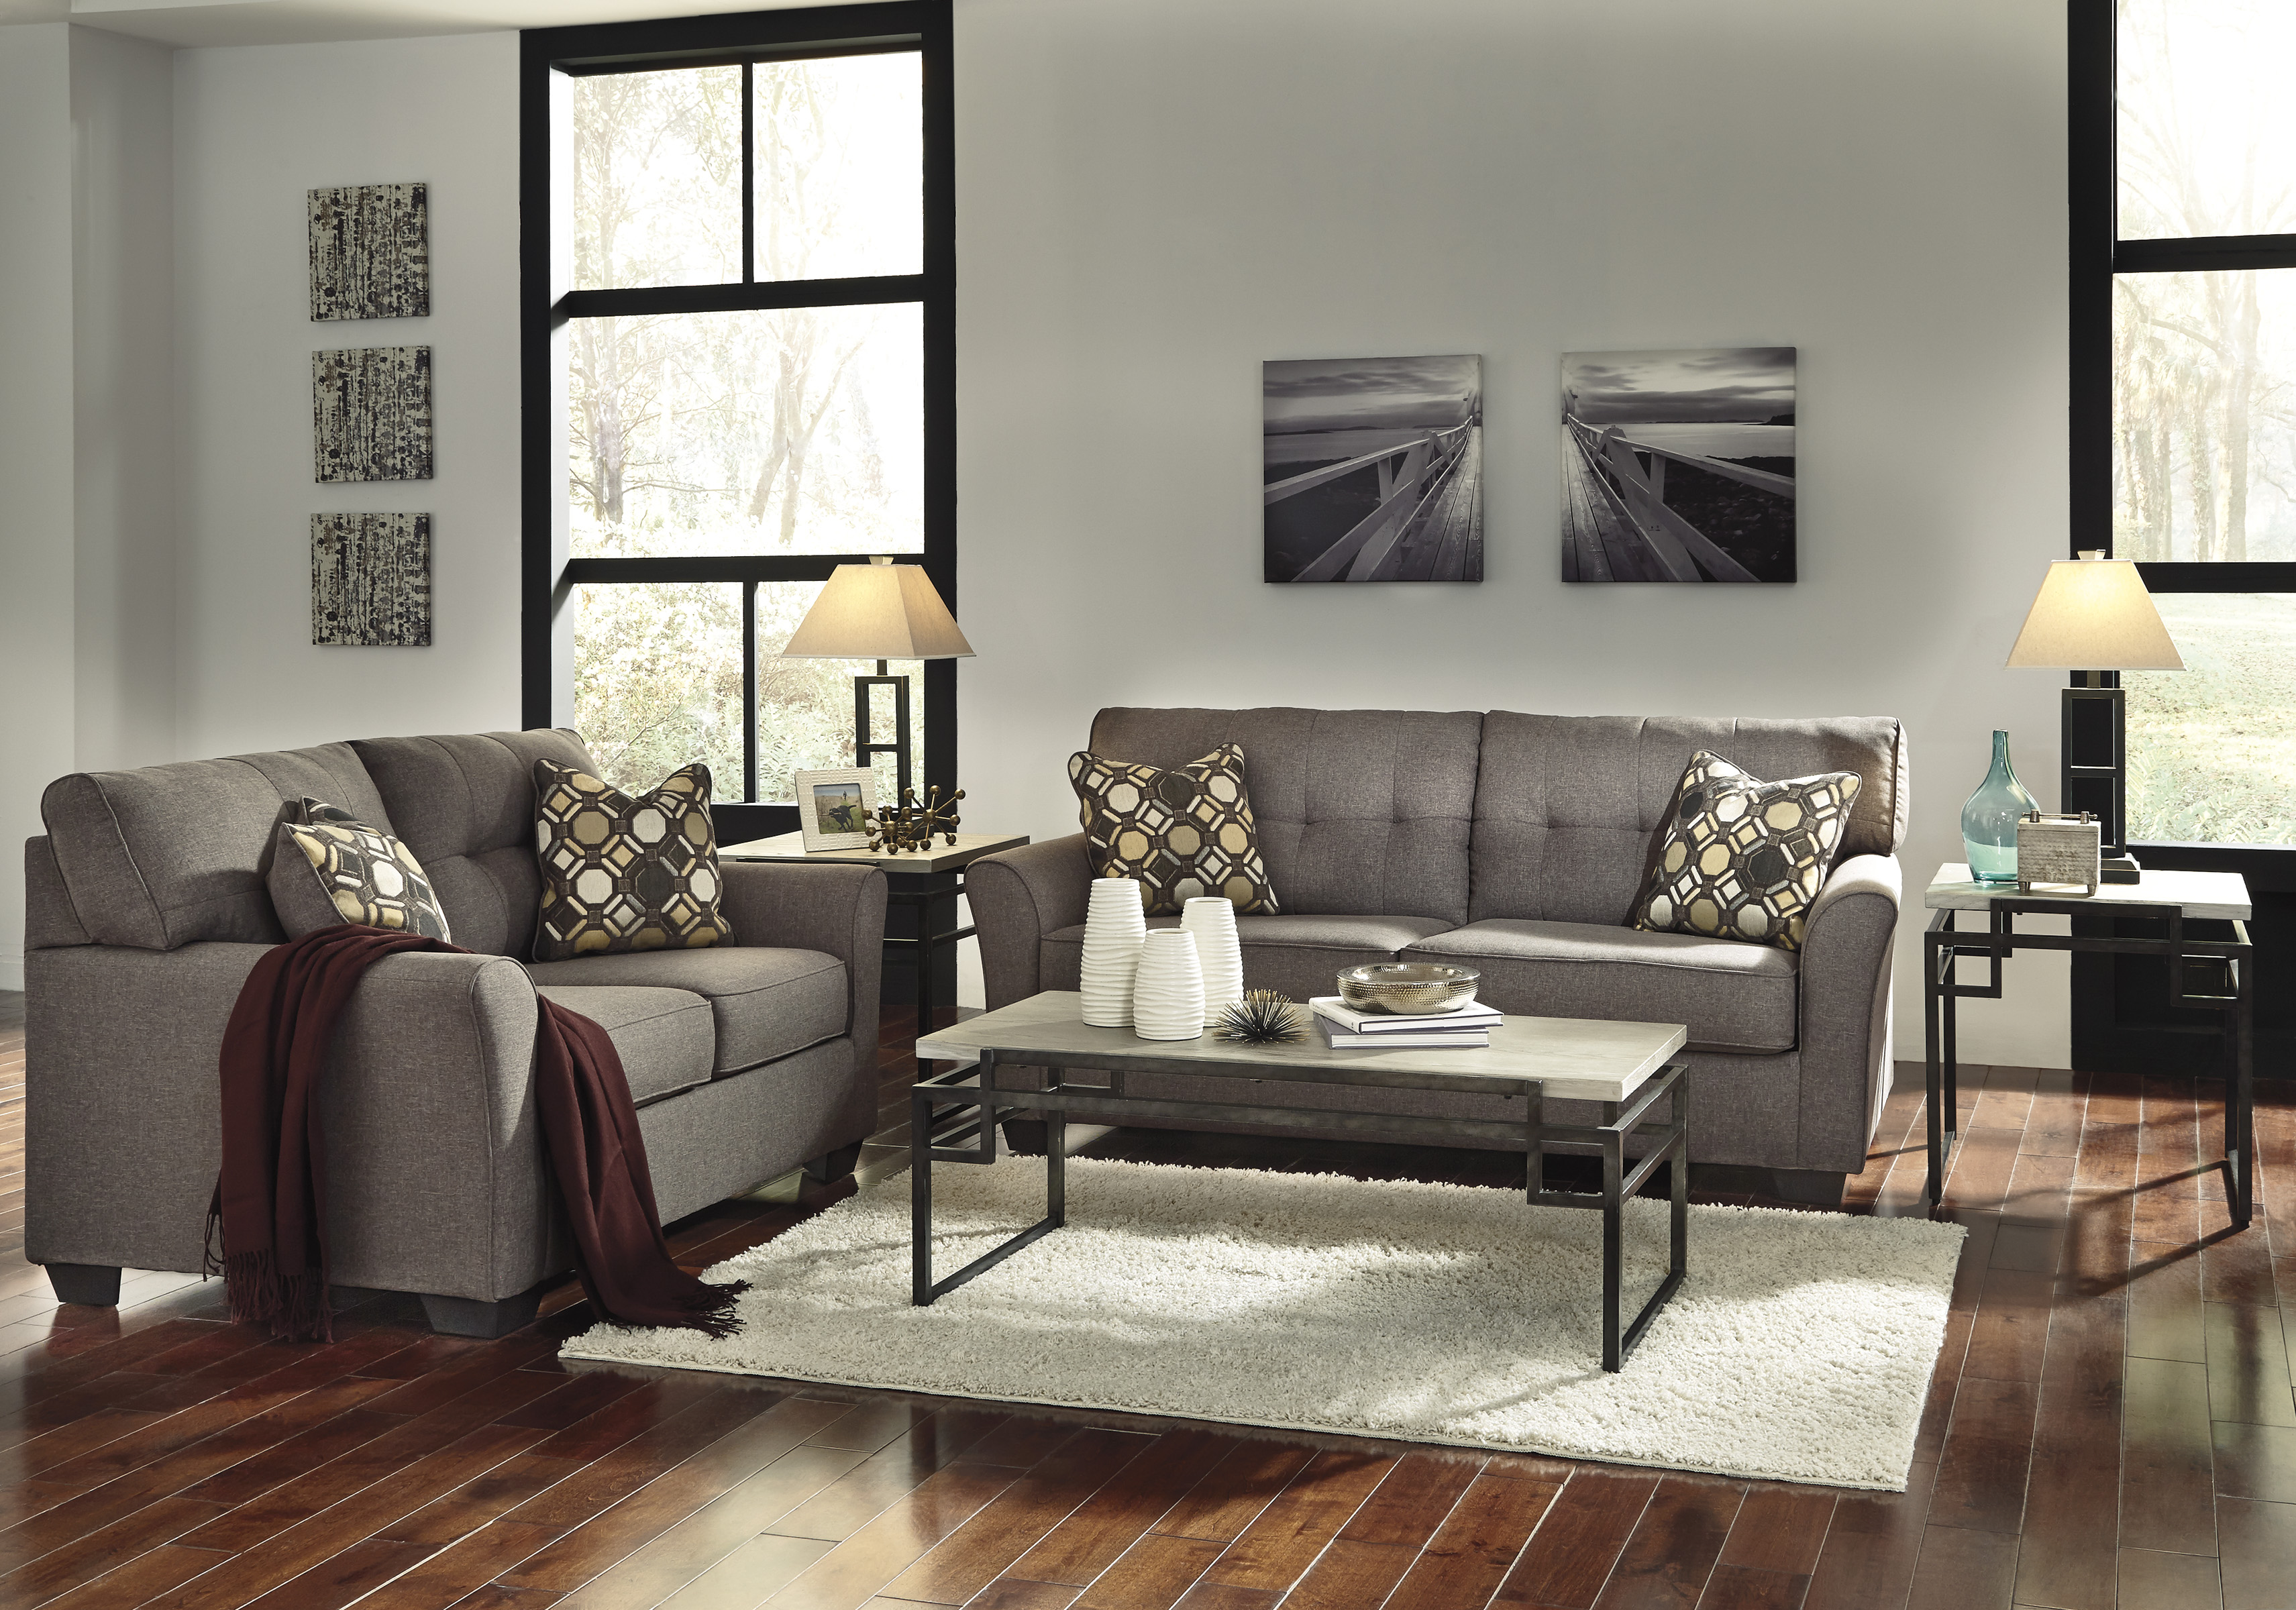 Ashley Furniture Tibbee Slate 2pc Living Room Set Free Delivery Marjen Of Chicago Chicago